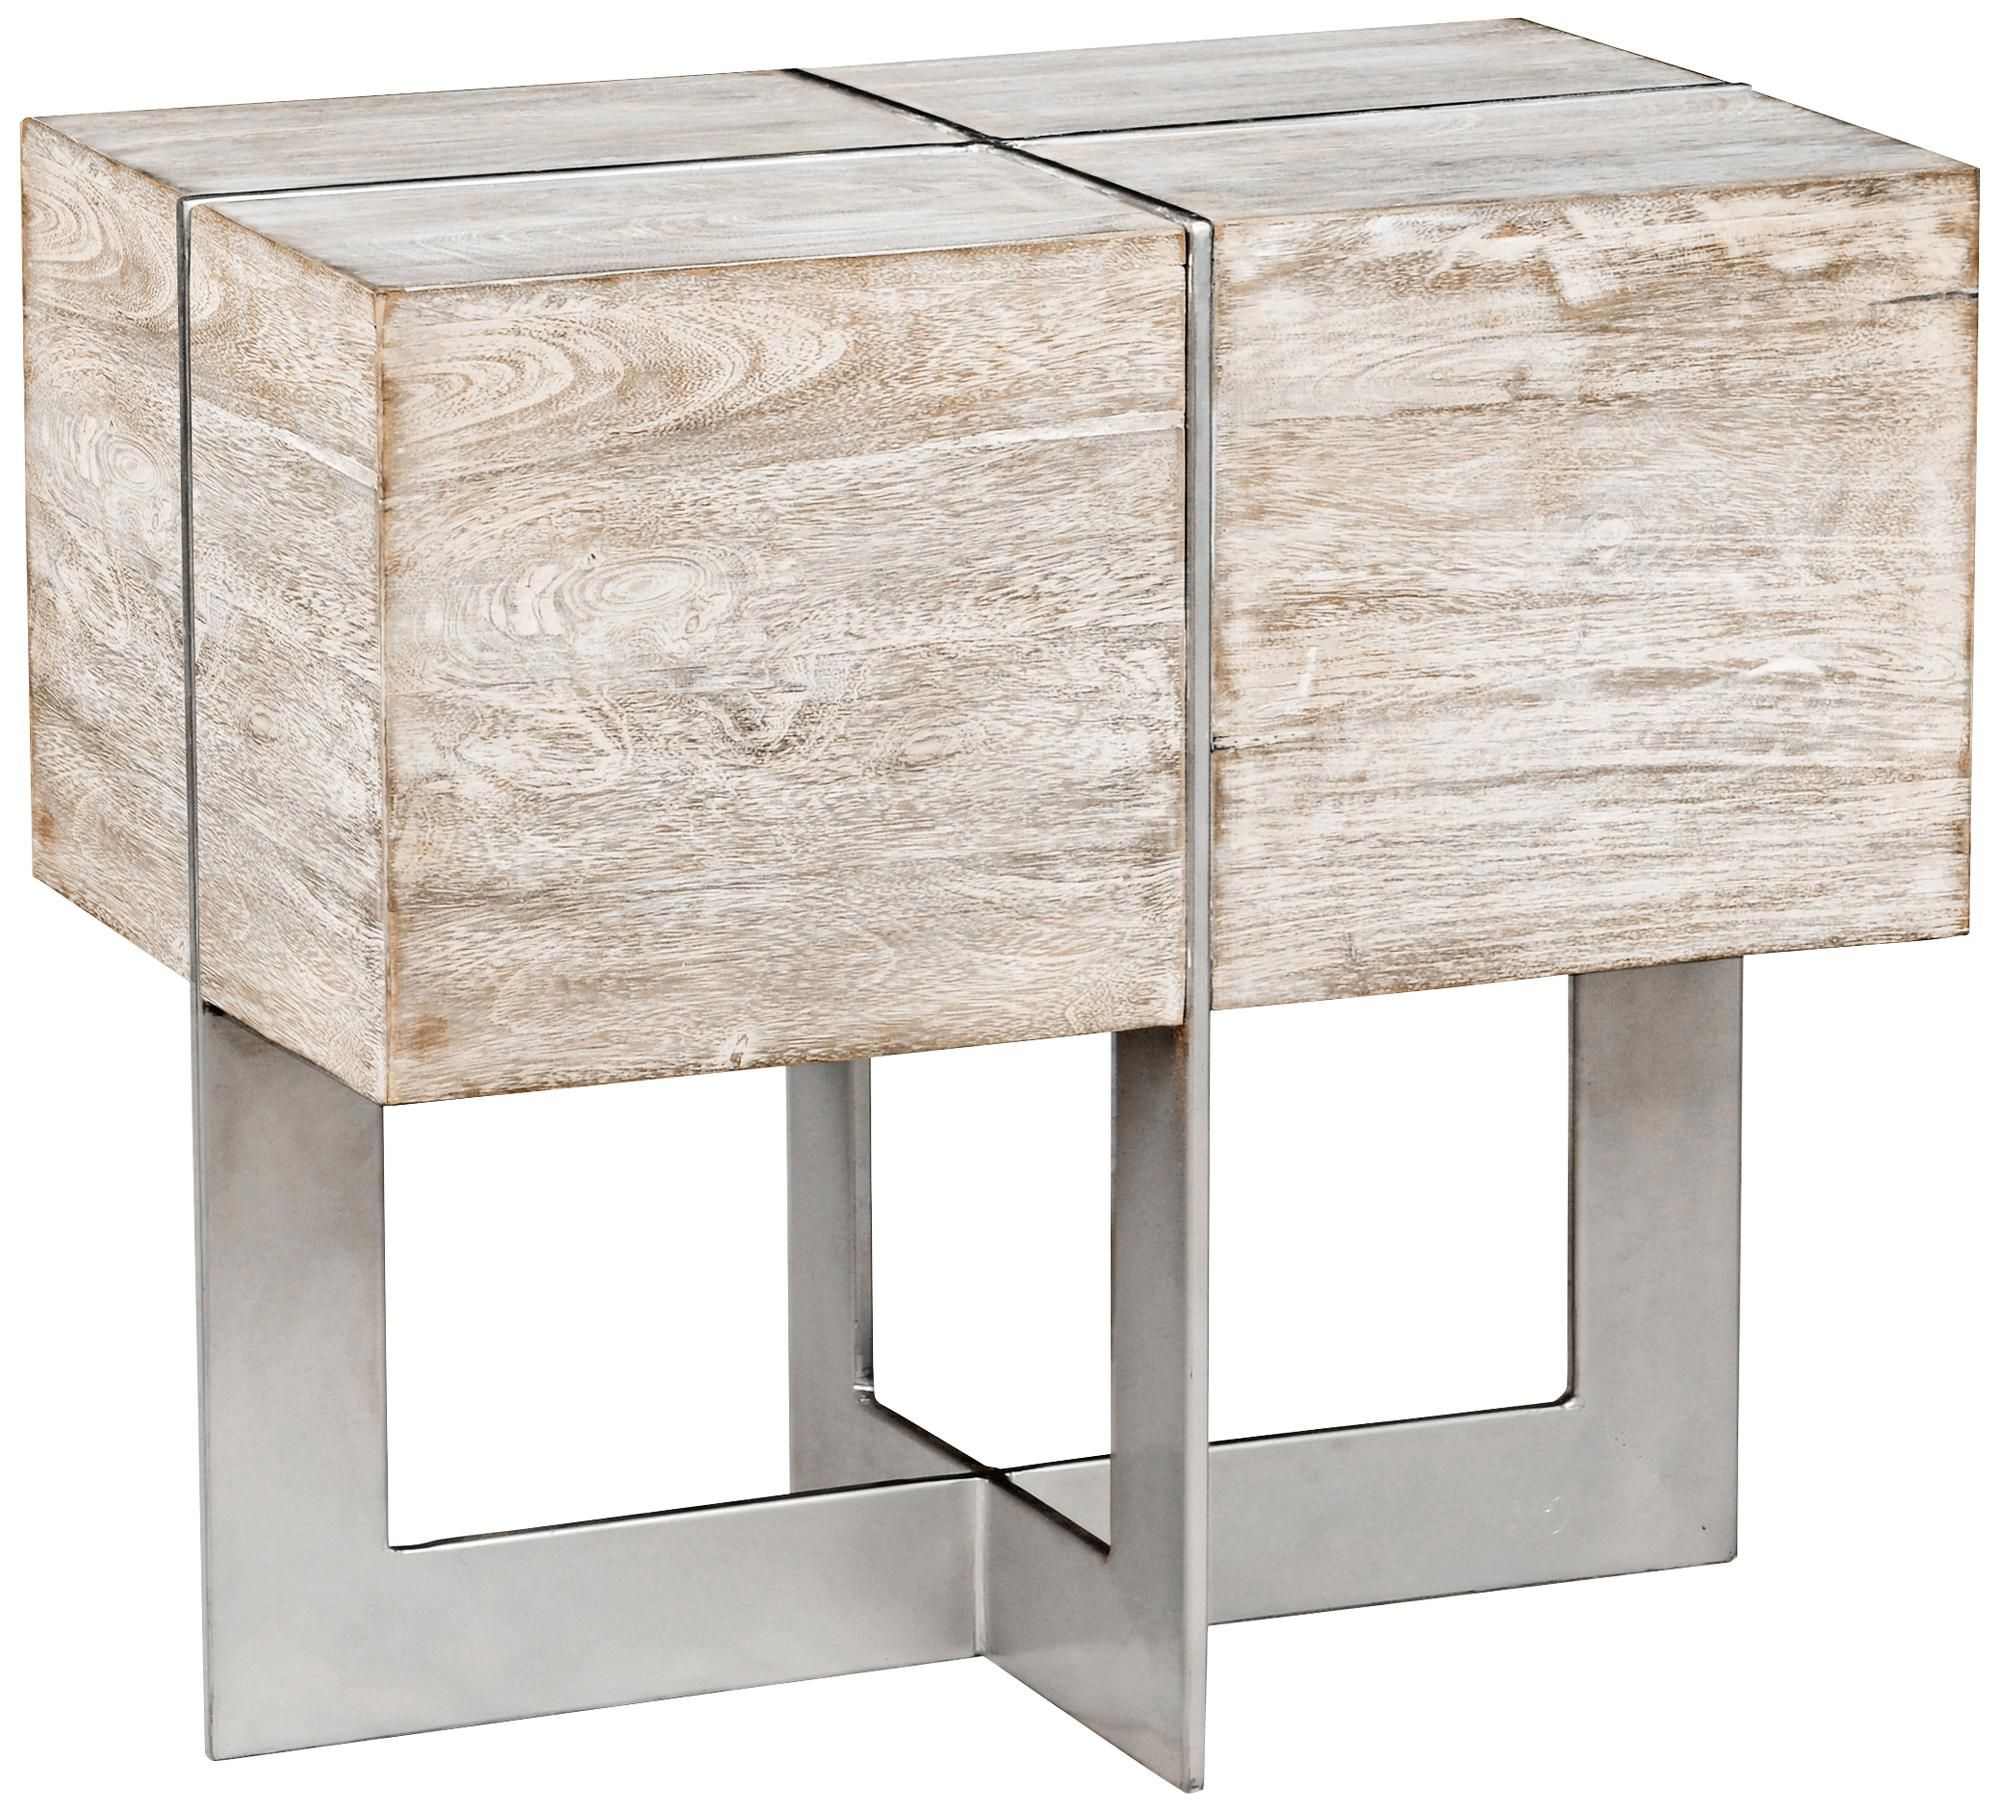 Desmond White Wash Solid Mango Wood Block End Table | Home Accents Inside Parsons Grey Marble Top & Dark Steel Base 48x16 Console Tables (View 13 of 30)